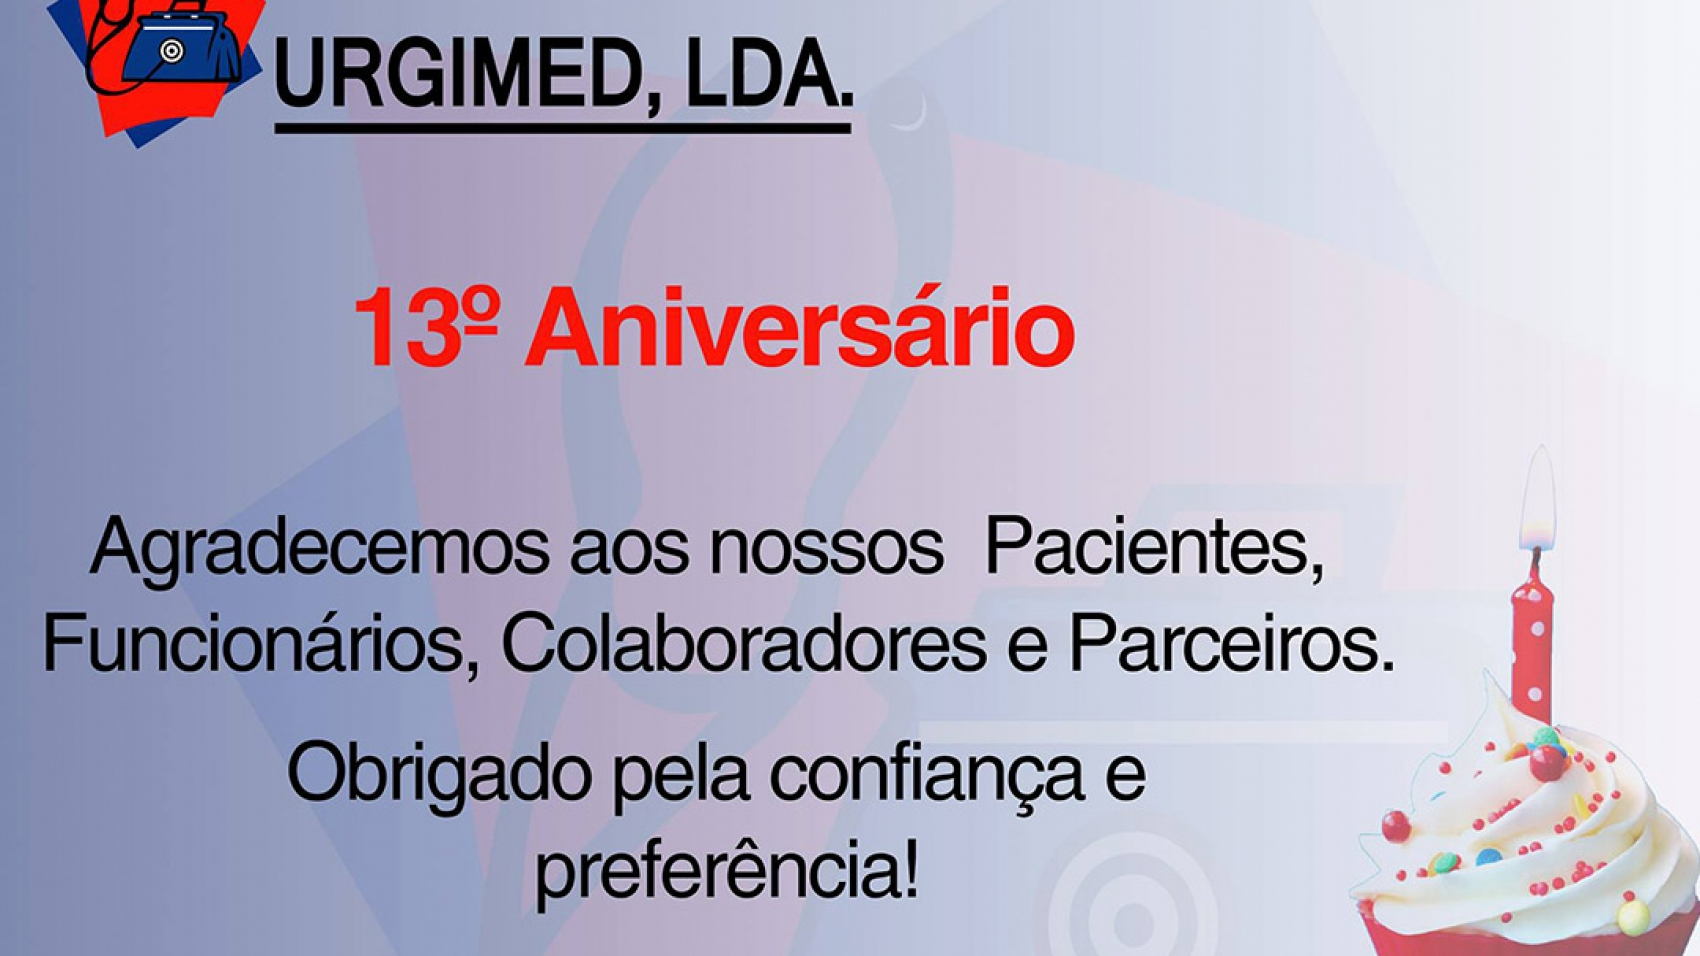 urgimed-13th